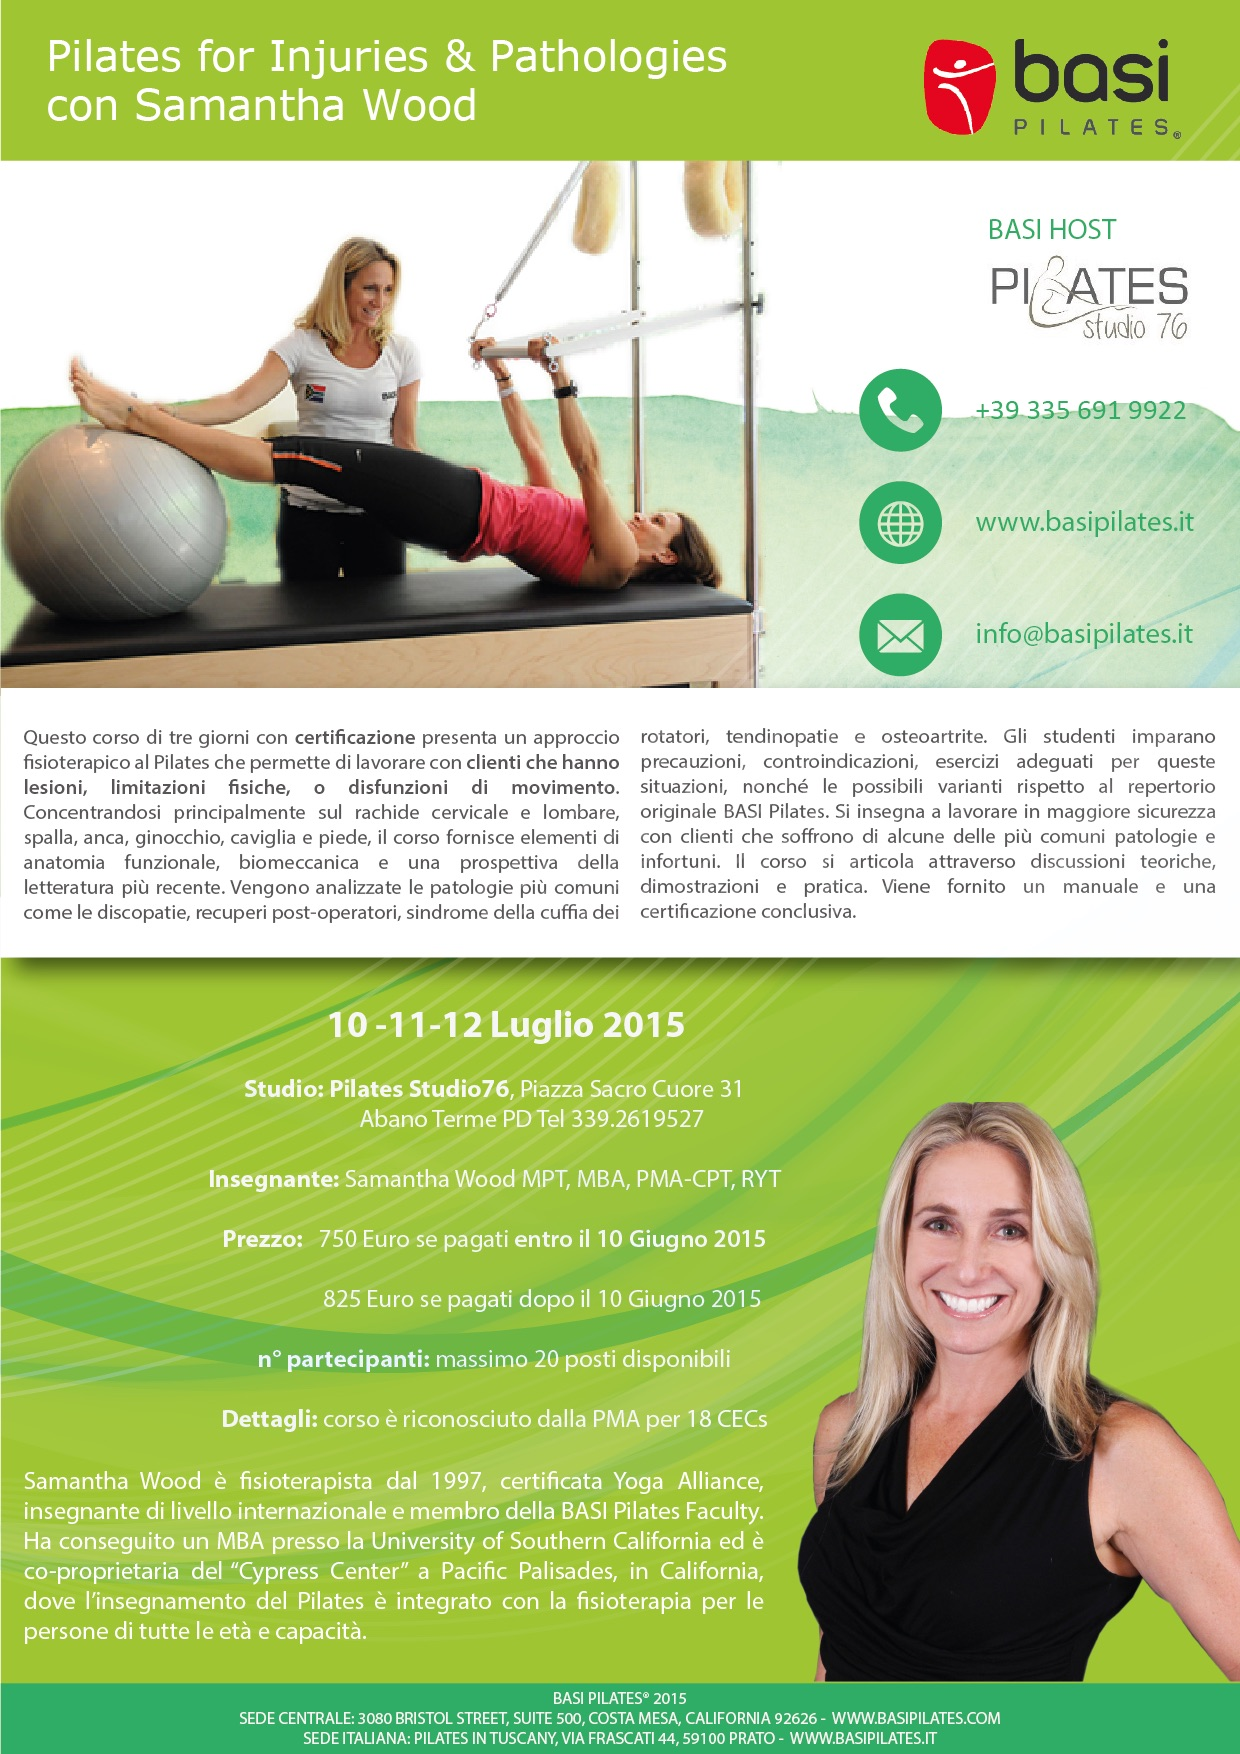 Pilates for injuries and pathologies